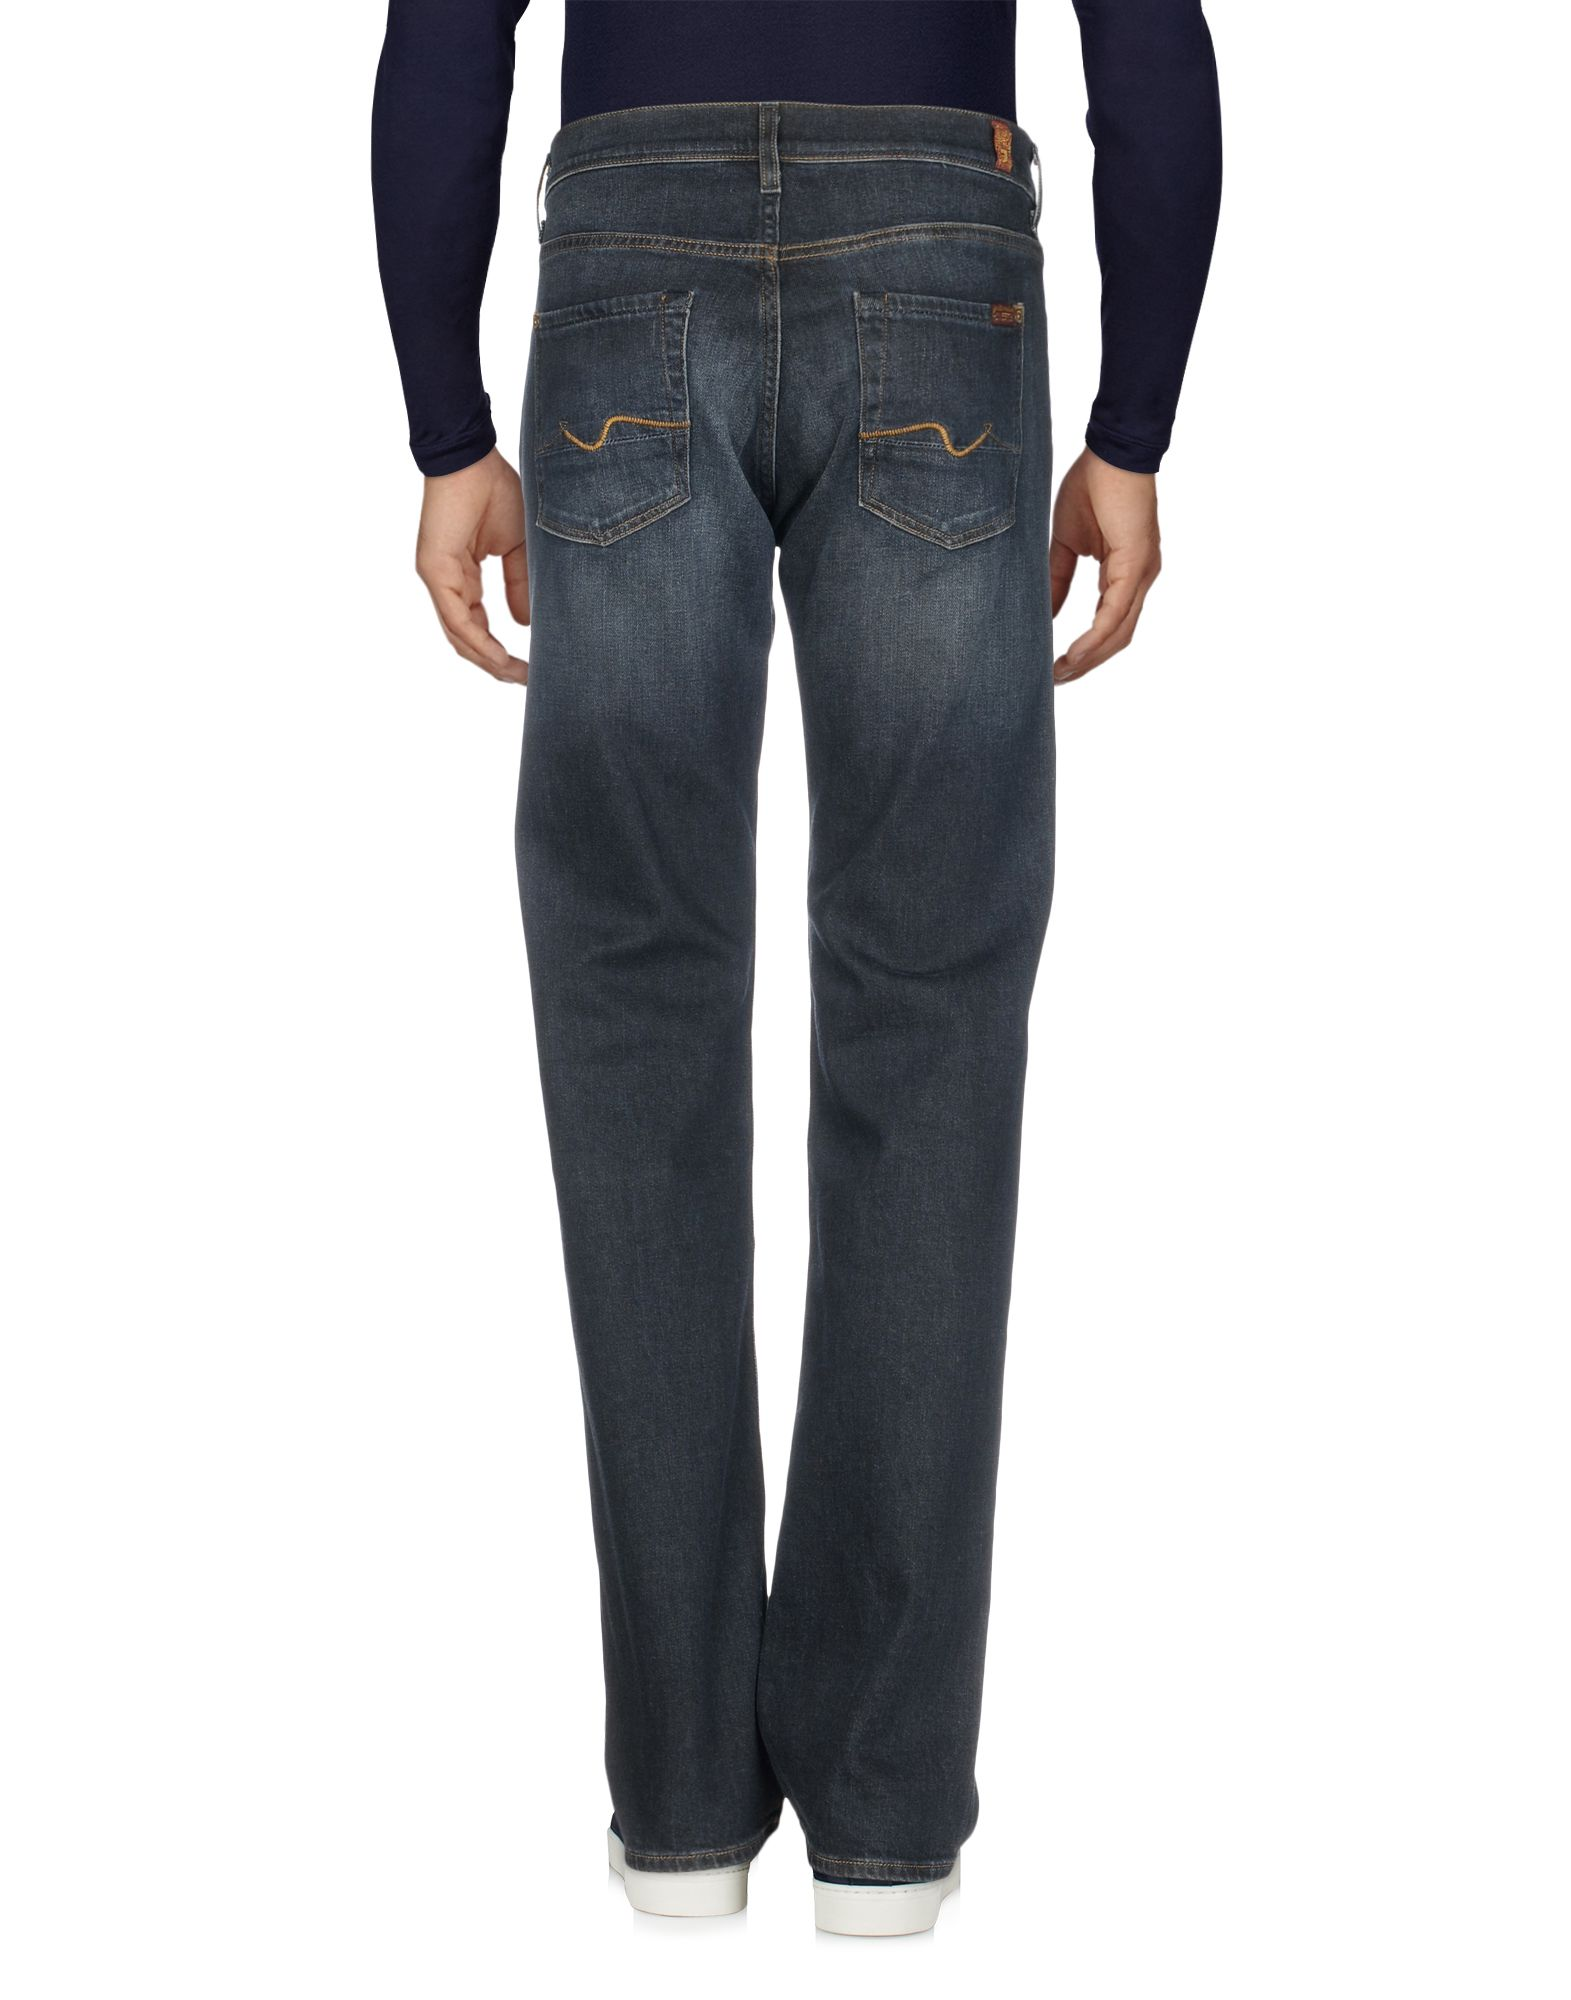 Pantaloni Jeans 7 For All Mankind Uomo - 42674939GQ 42674939GQ 42674939GQ c568c4